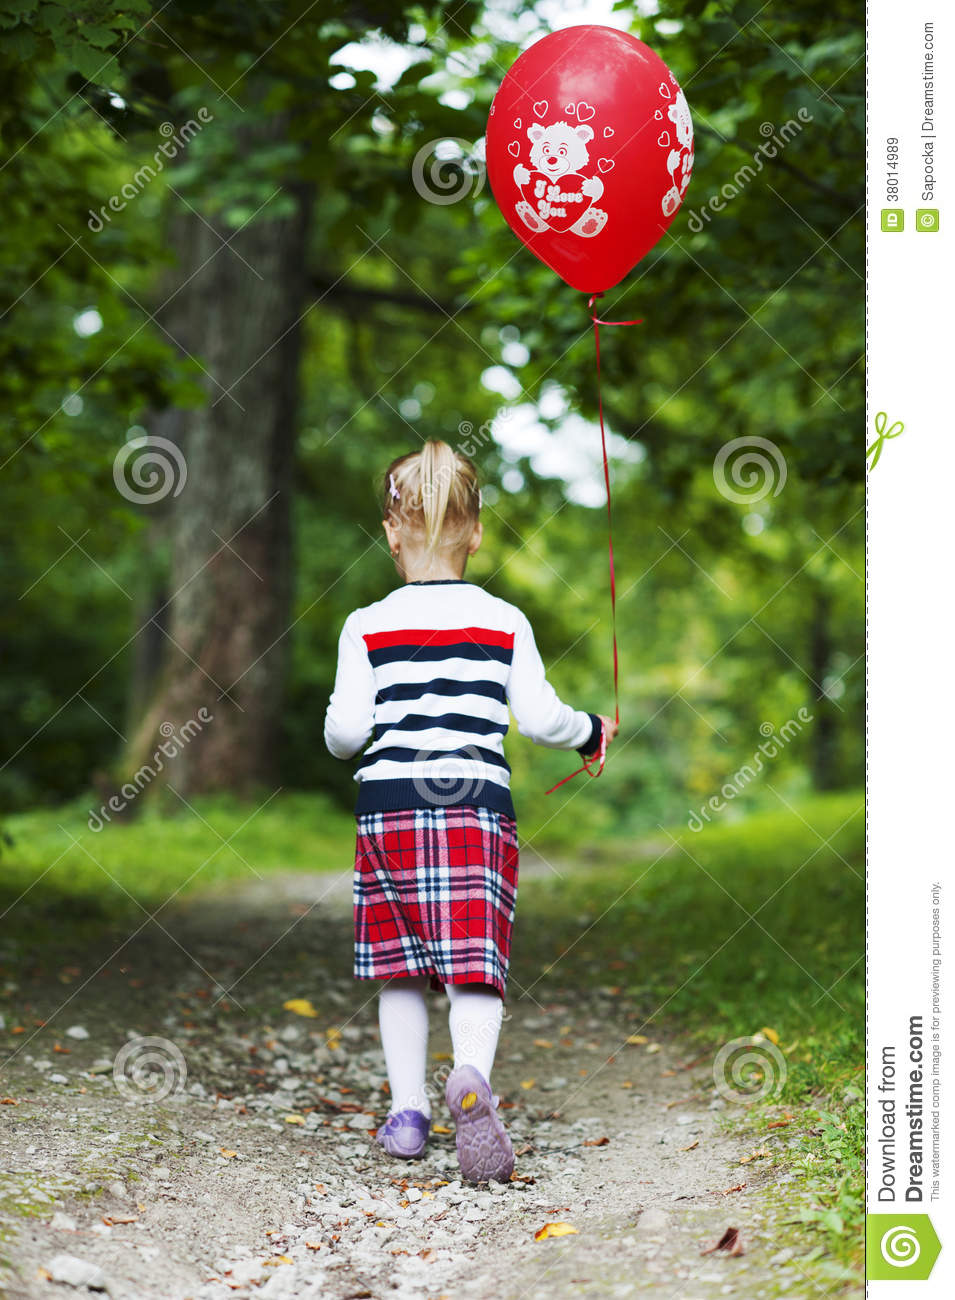 little blonde girl with red balloon walking on footpath